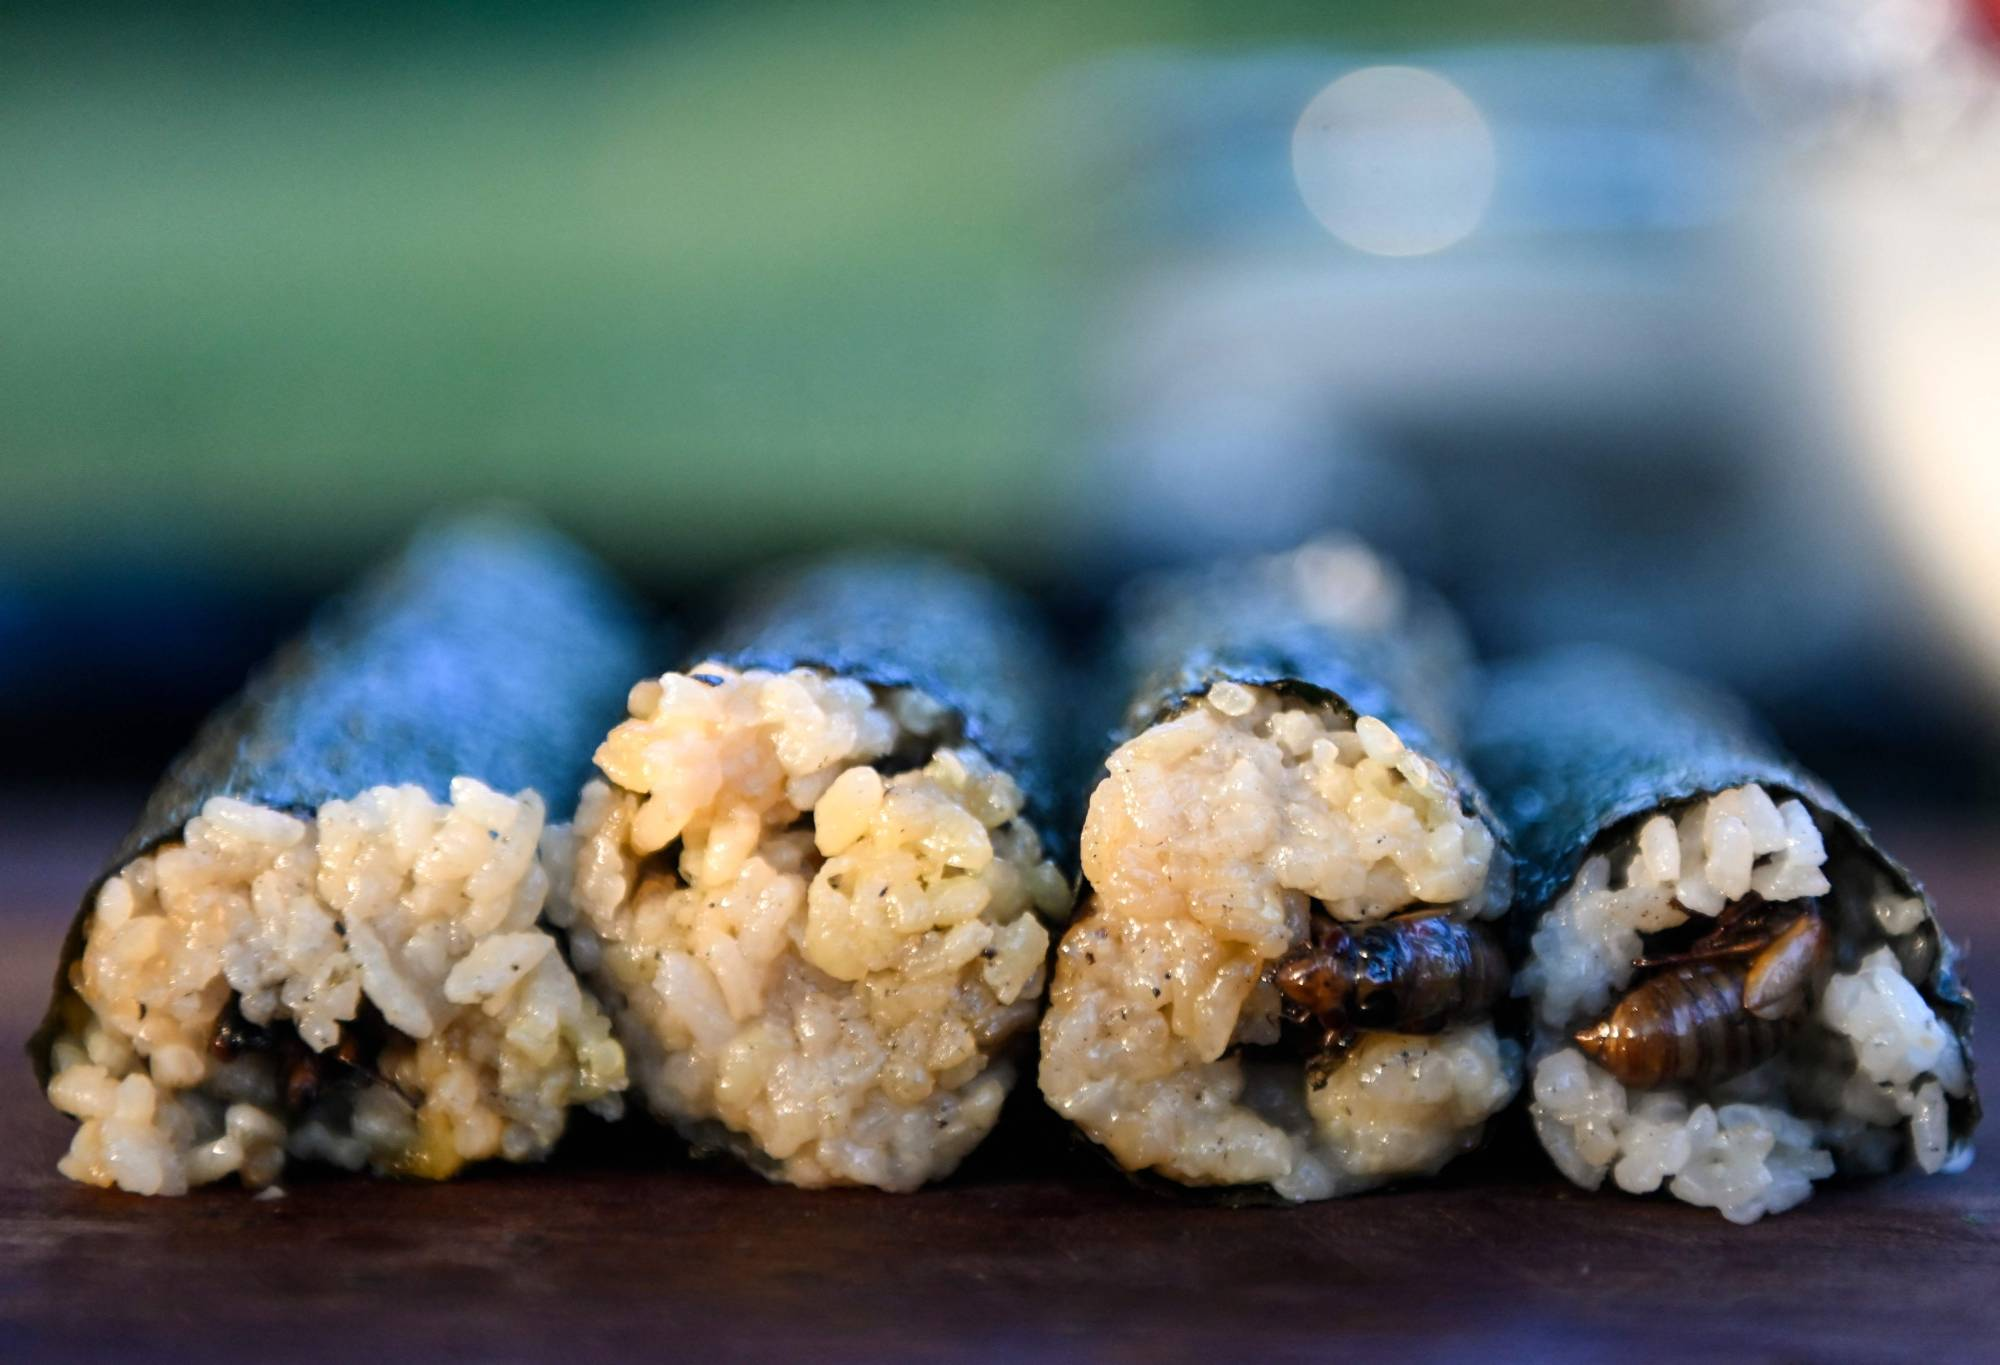 Fried cicadas are rolled into a sushi roll by chef Bun Lai at Fort Totten Park in Washington on Sunday.   AFP-JIJI